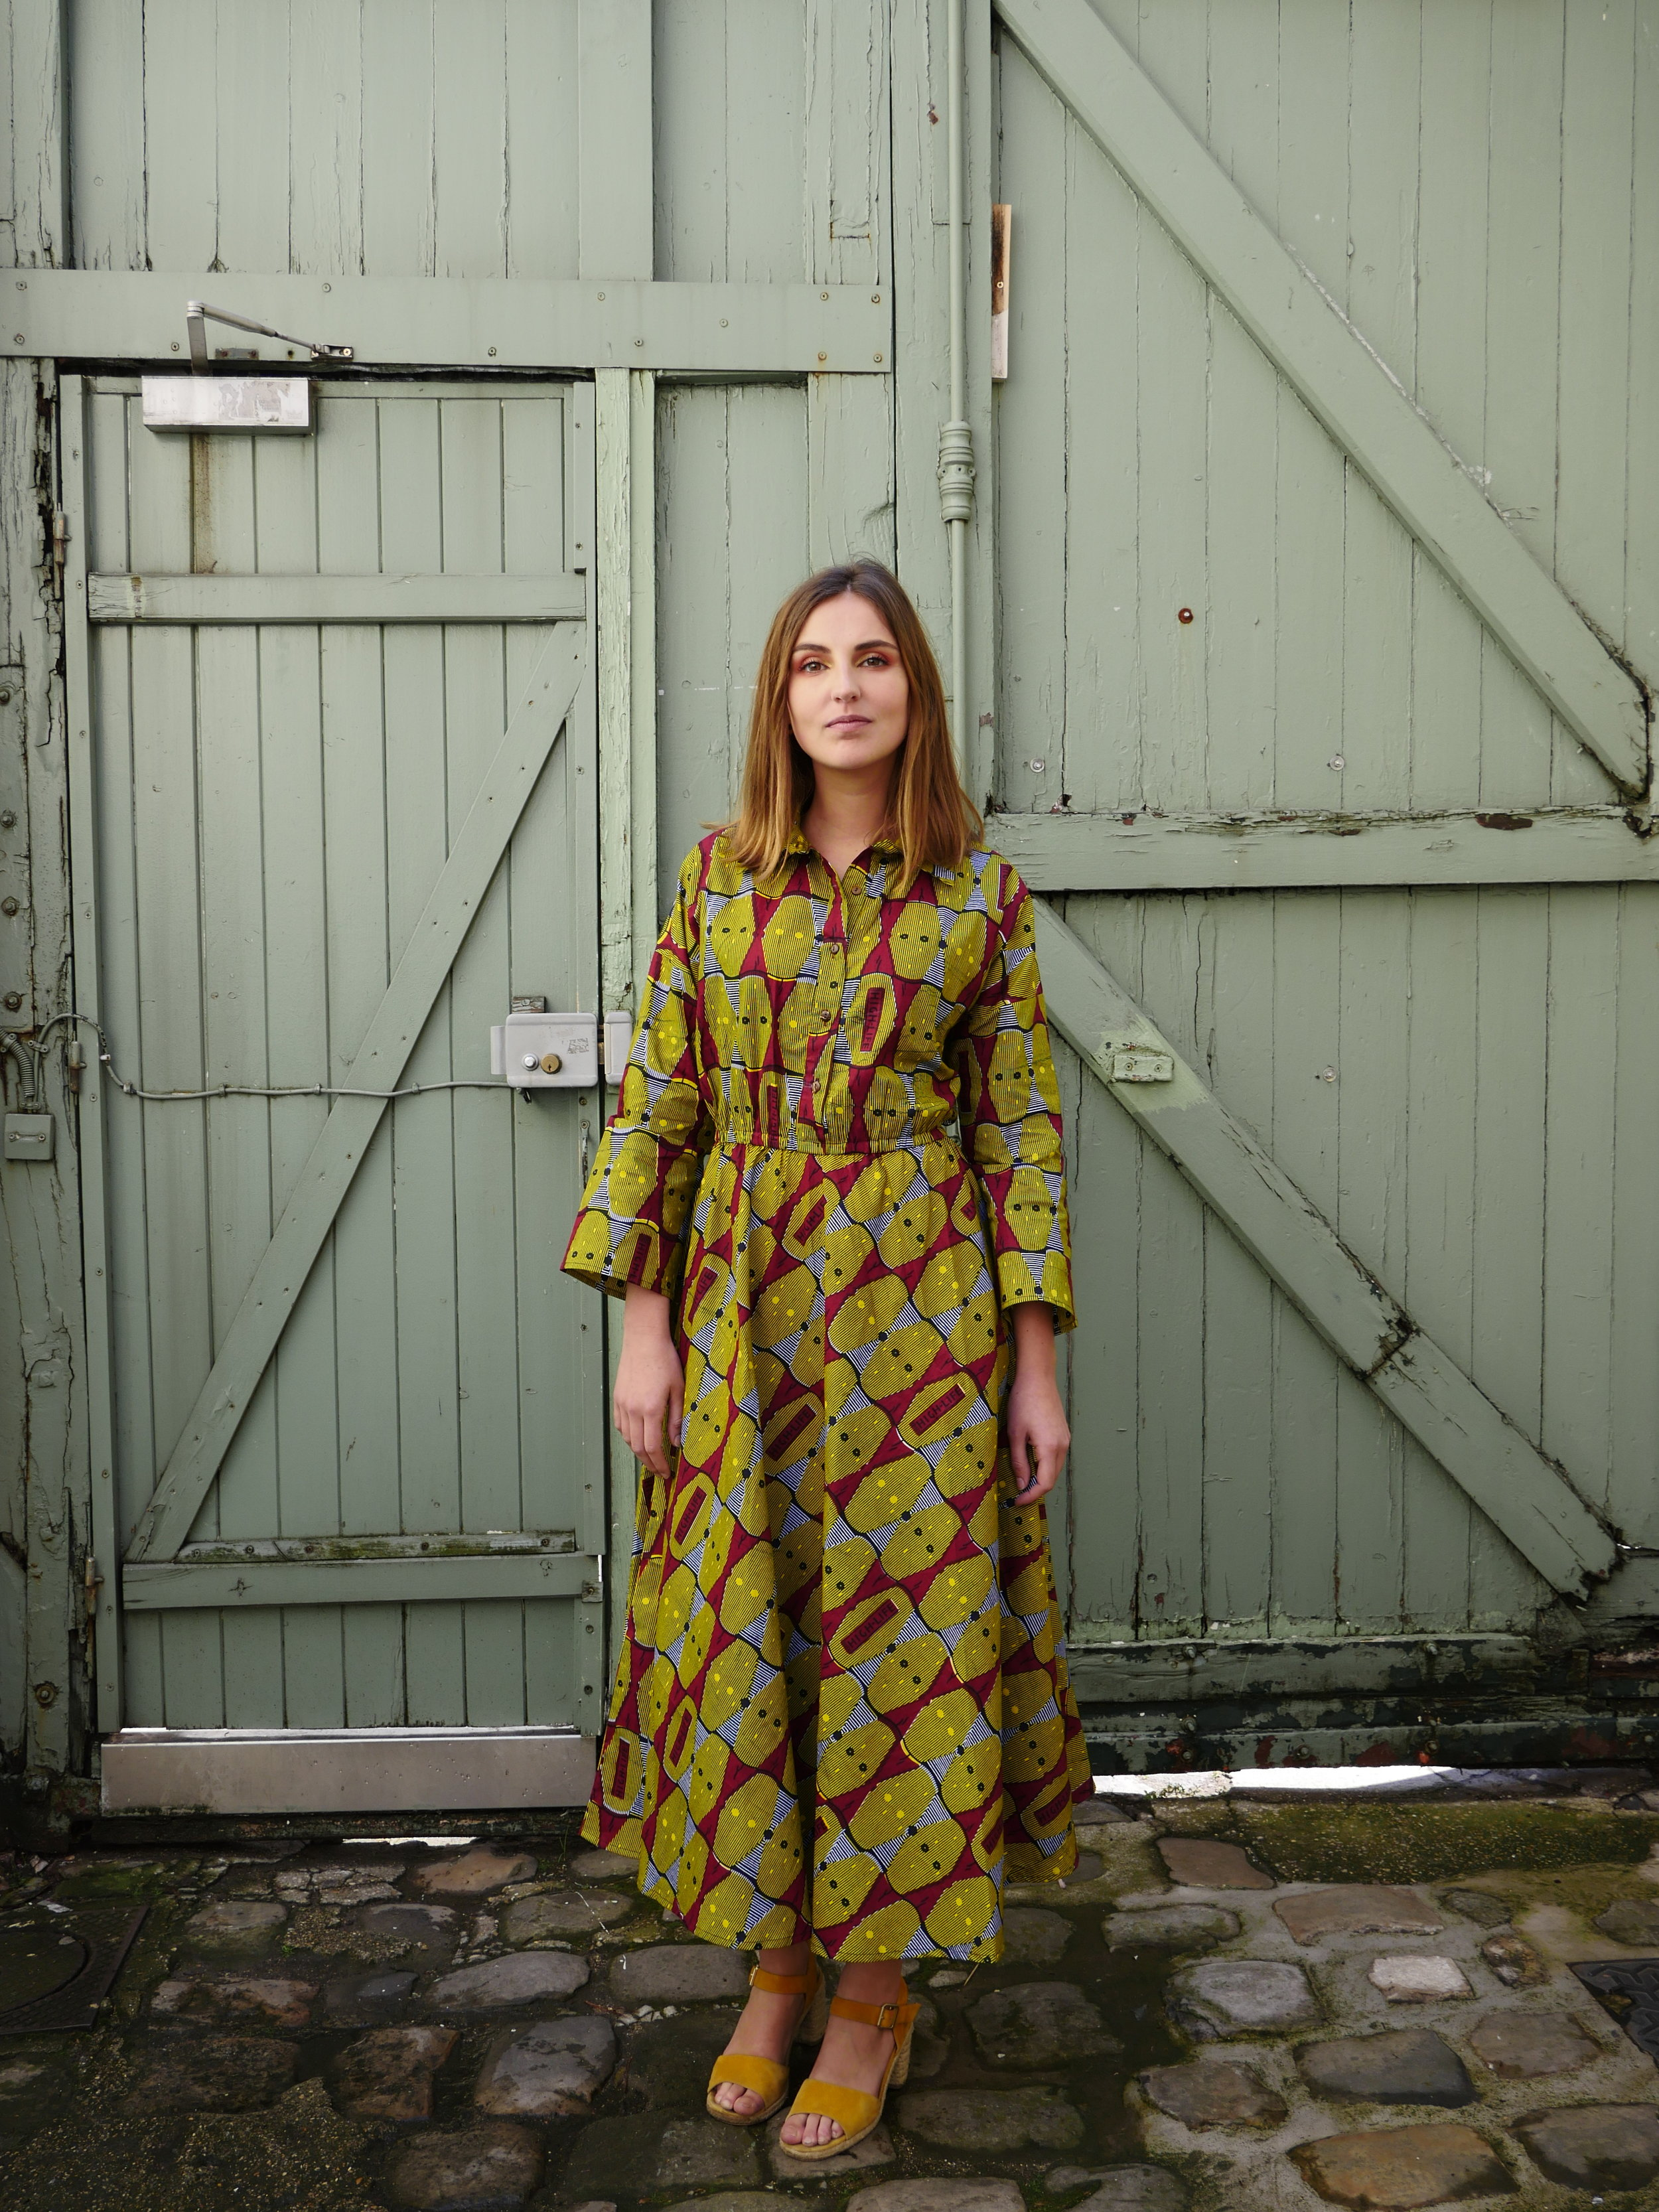 Ana Yellow Long Dress - Waxed cotton bought in Senegal, made in Bangladesh with love